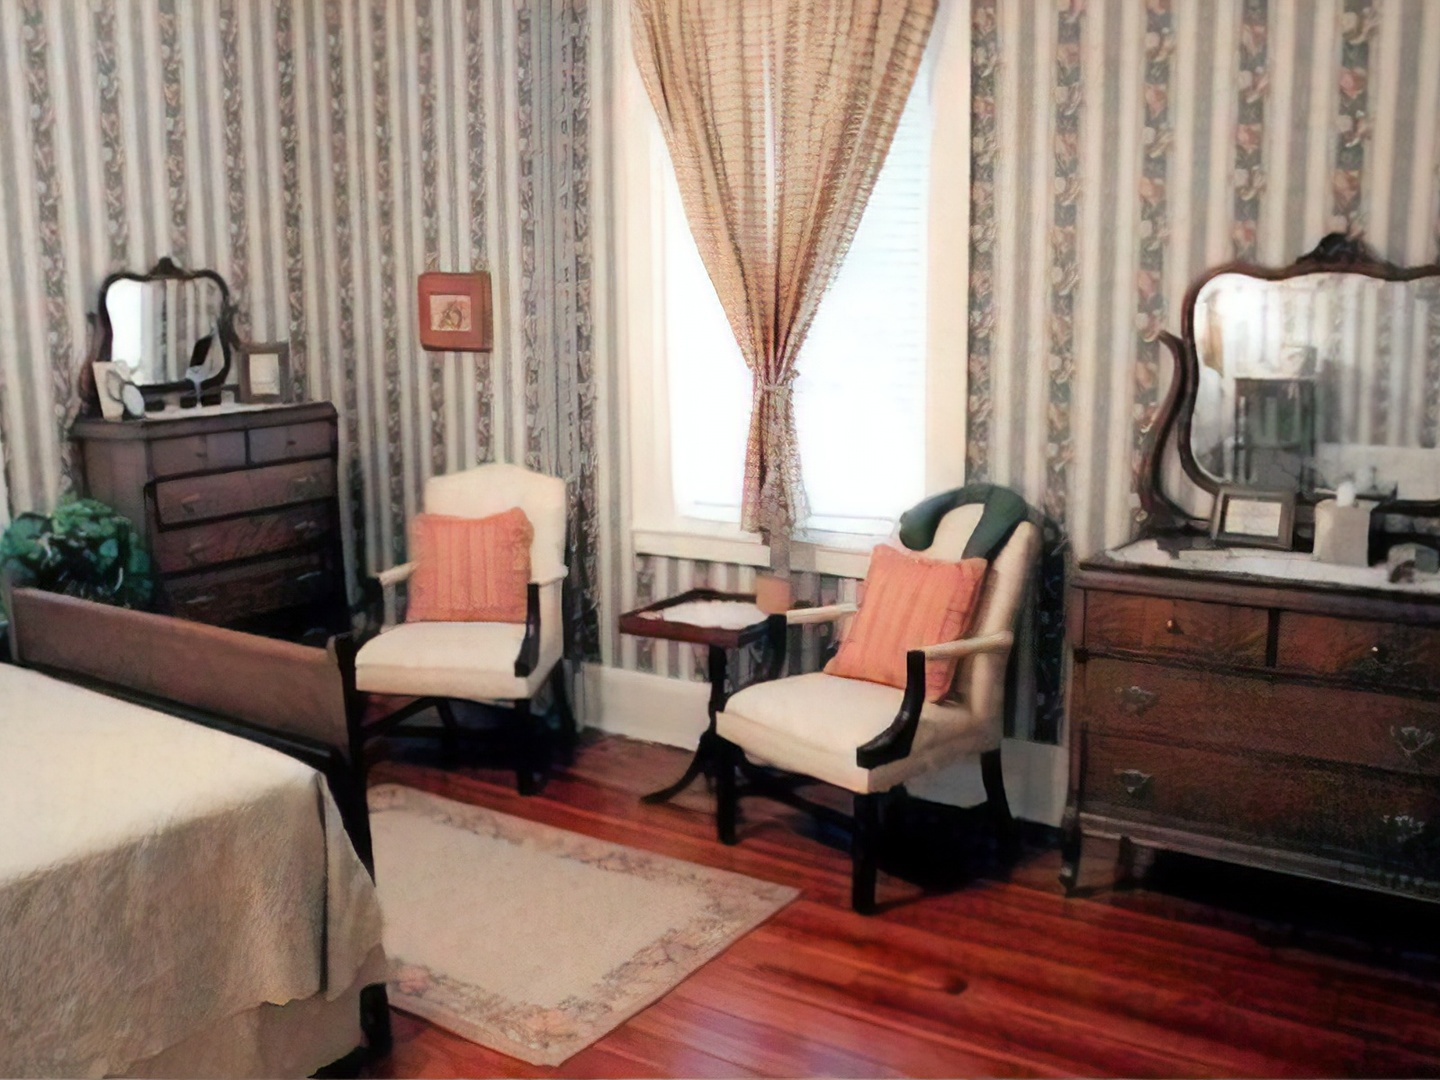 A living room filled with furniture and a curtain at Rocky Springs Bed & Breakfast.